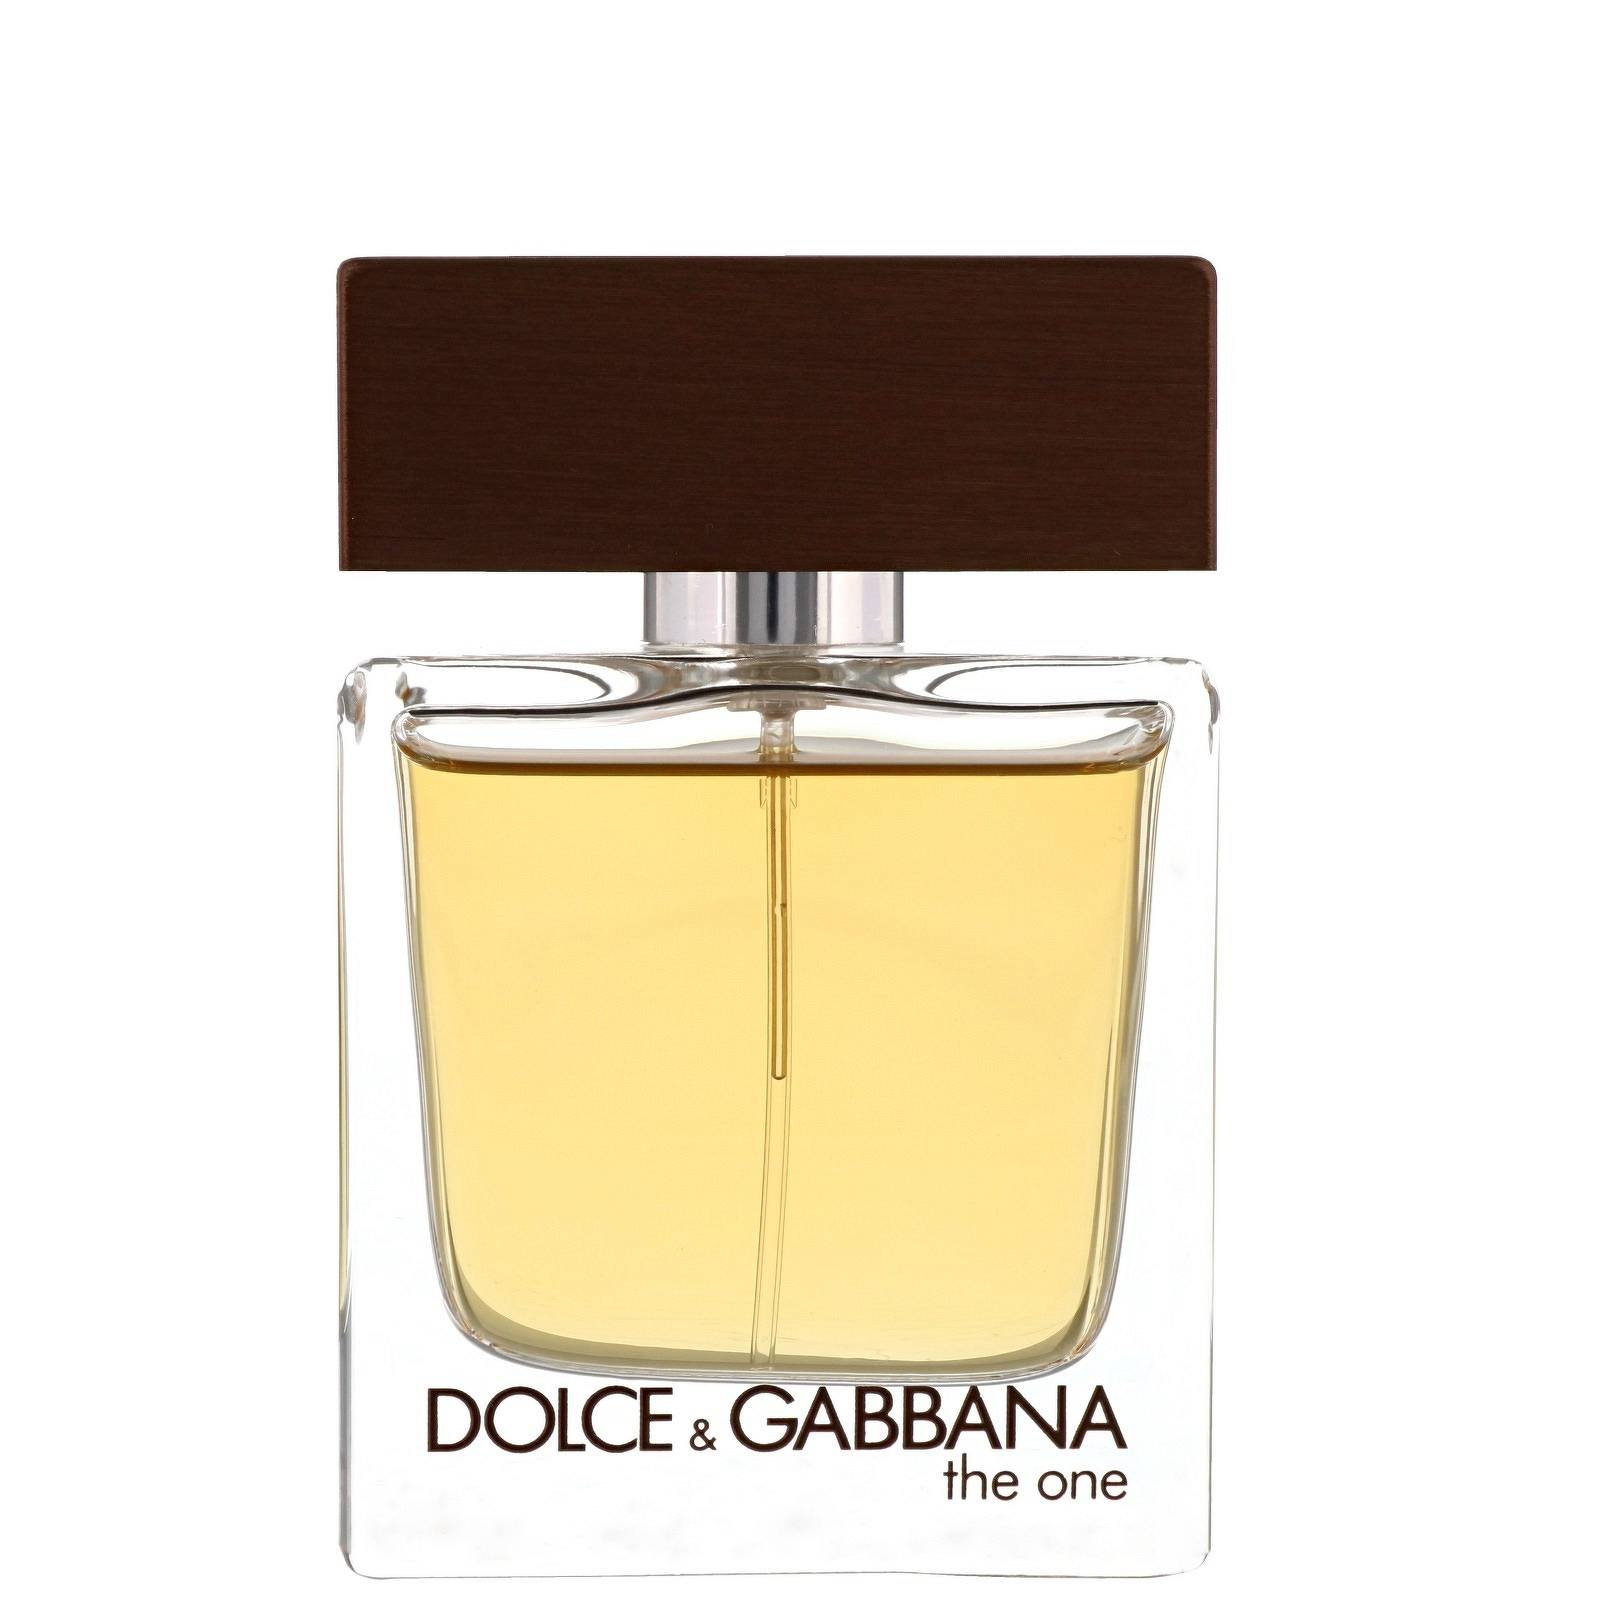 Dolce&Gabbana The One For Men 30ml Eau de Toilette Spray